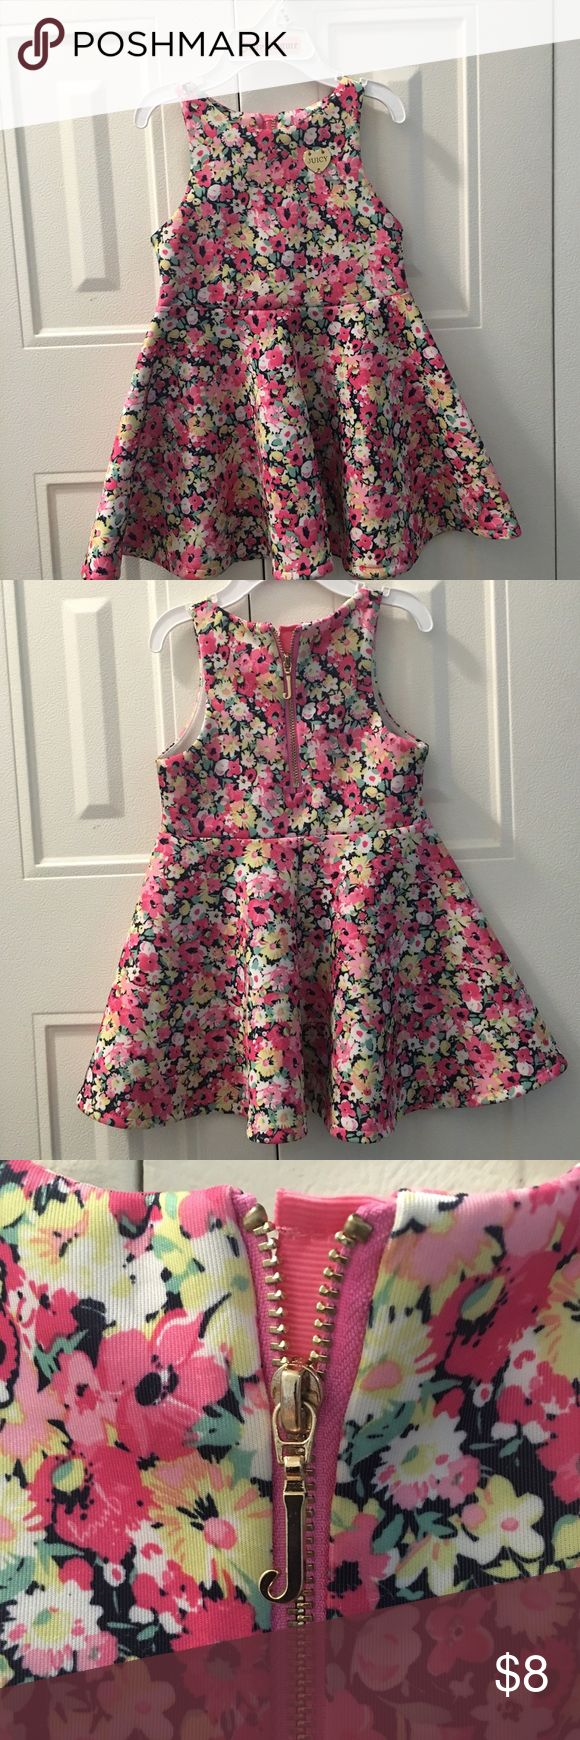 Baby juicy couture Baby juicy couture dress size 24 months good condition  Juicy Couture Dresses Casual